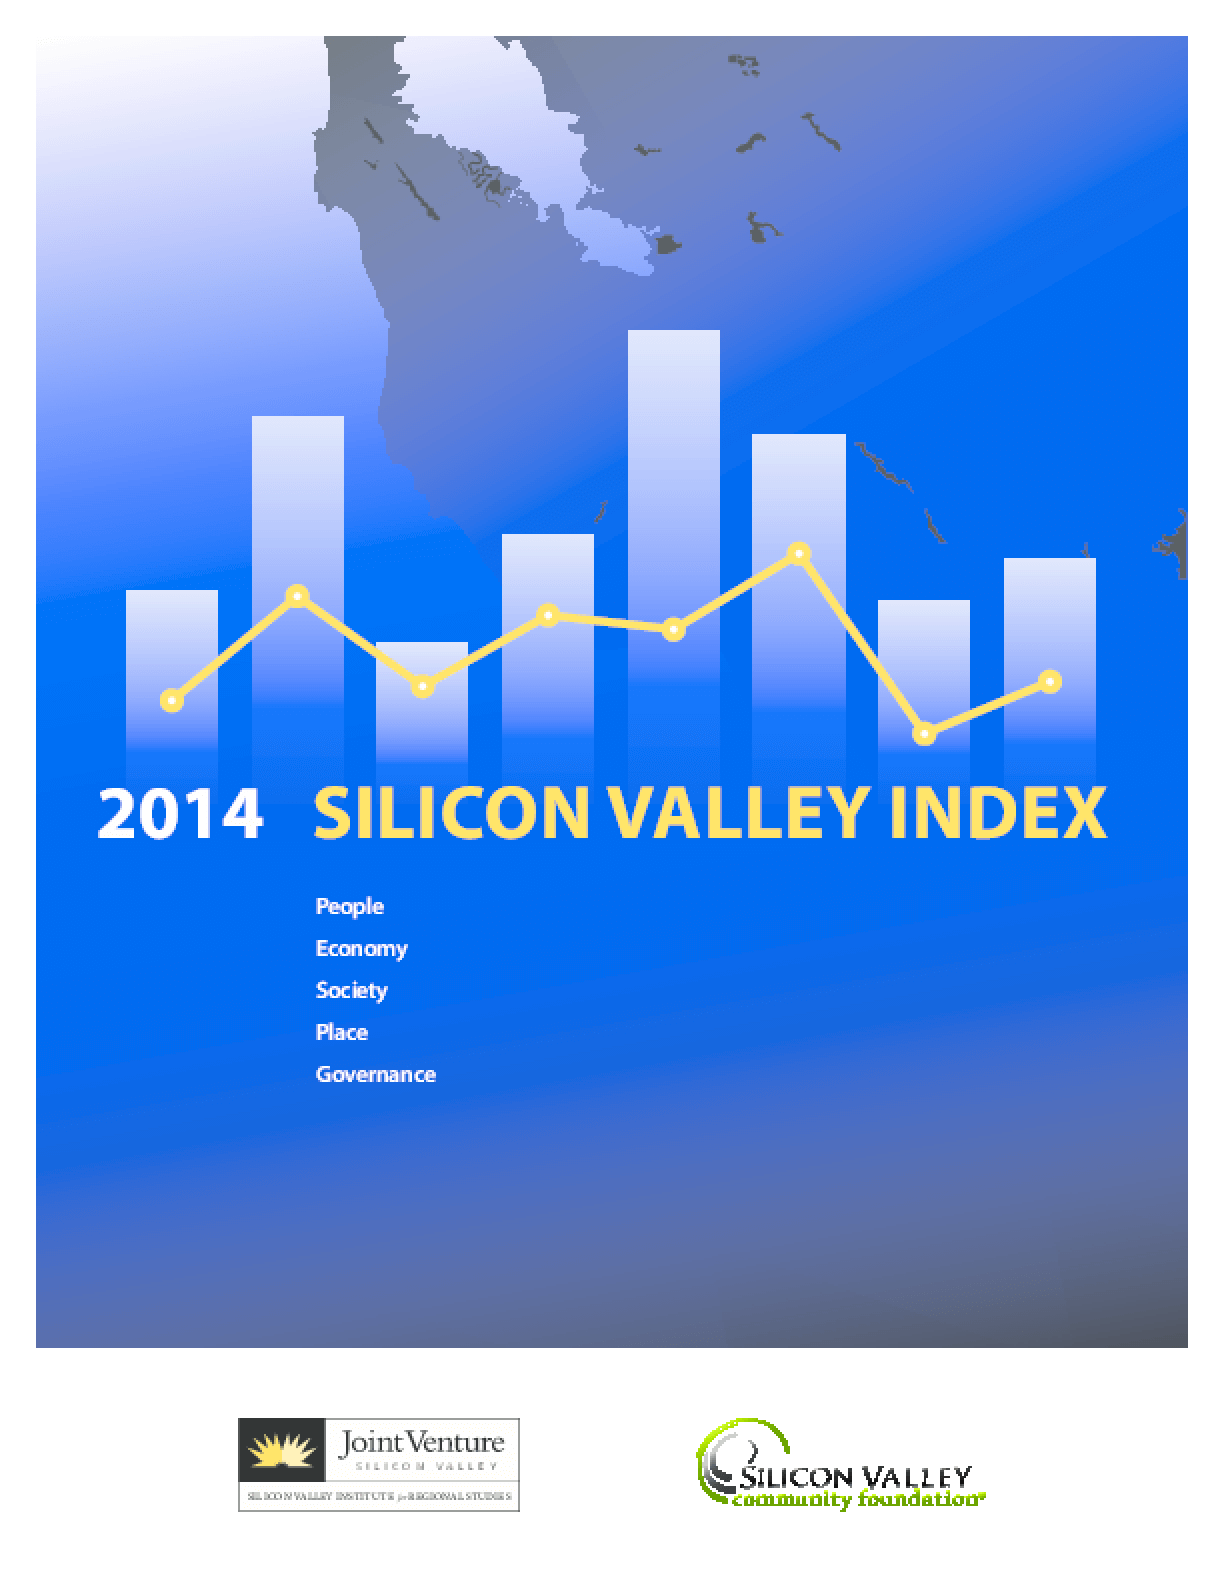 2014 Silicon Valley Index